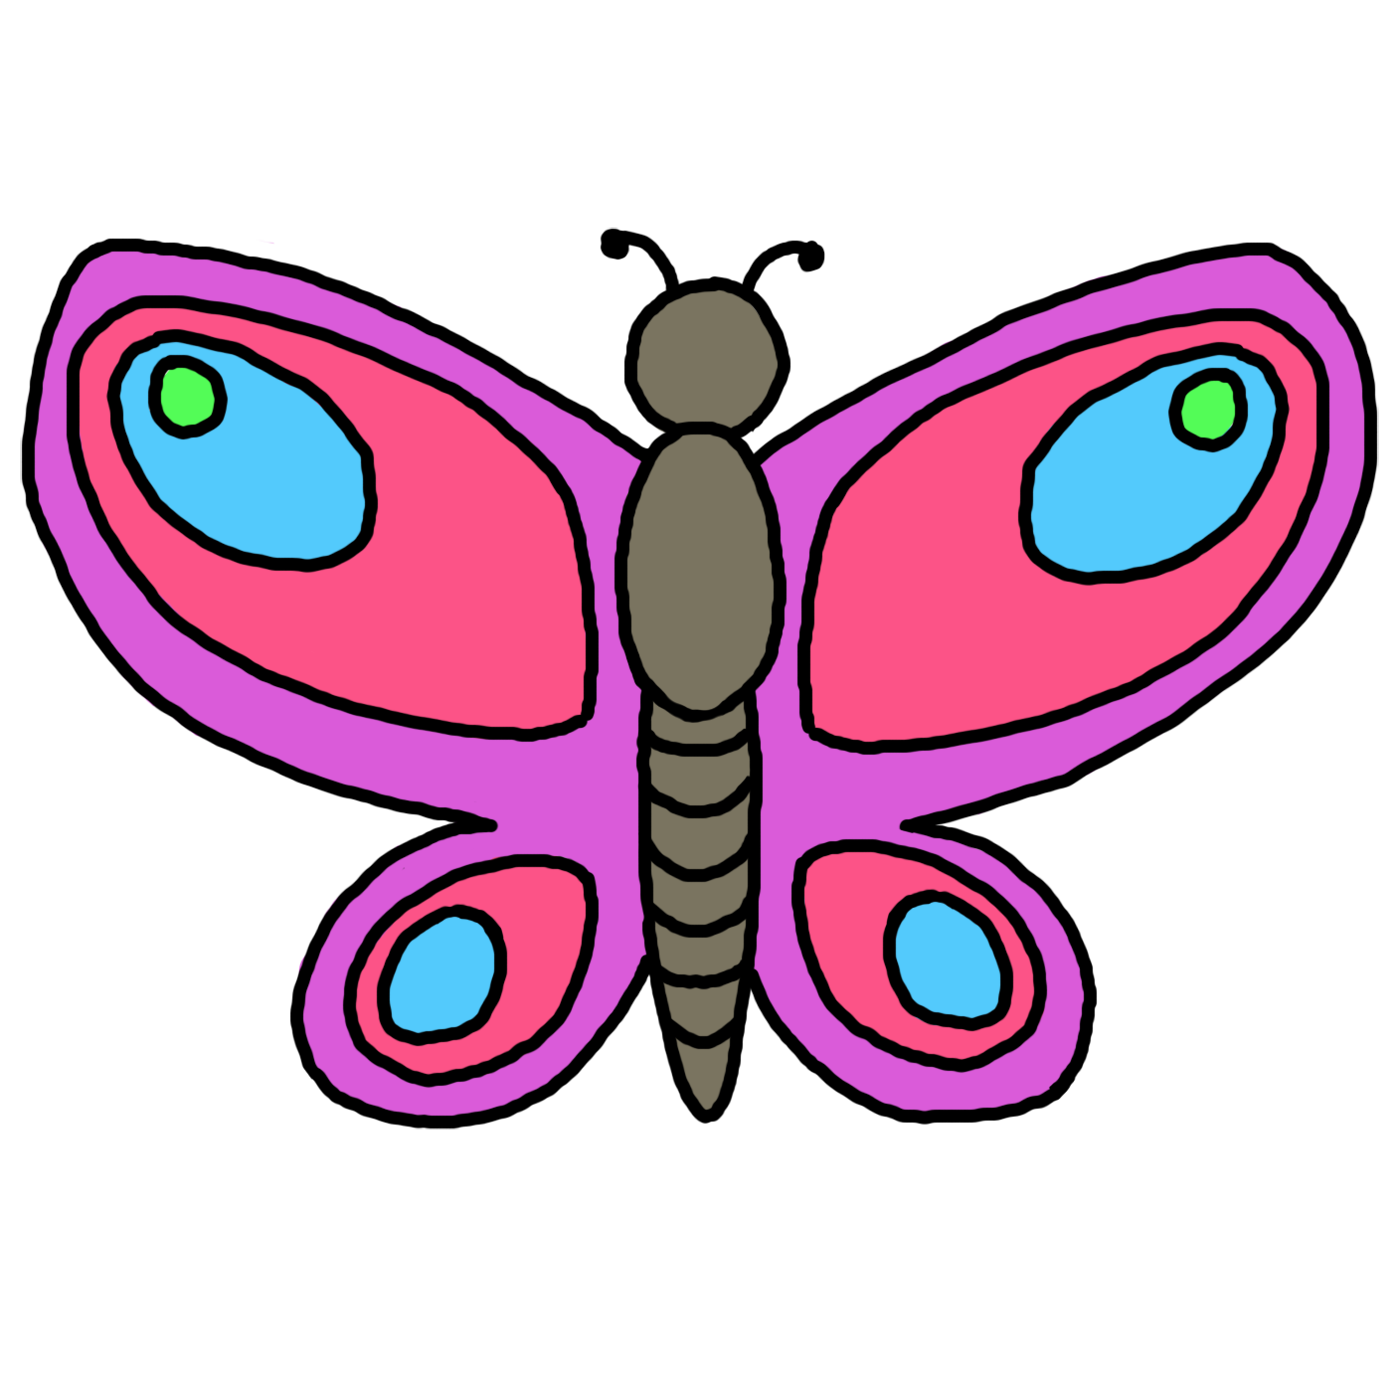 Small butterfly clipart - Clipground